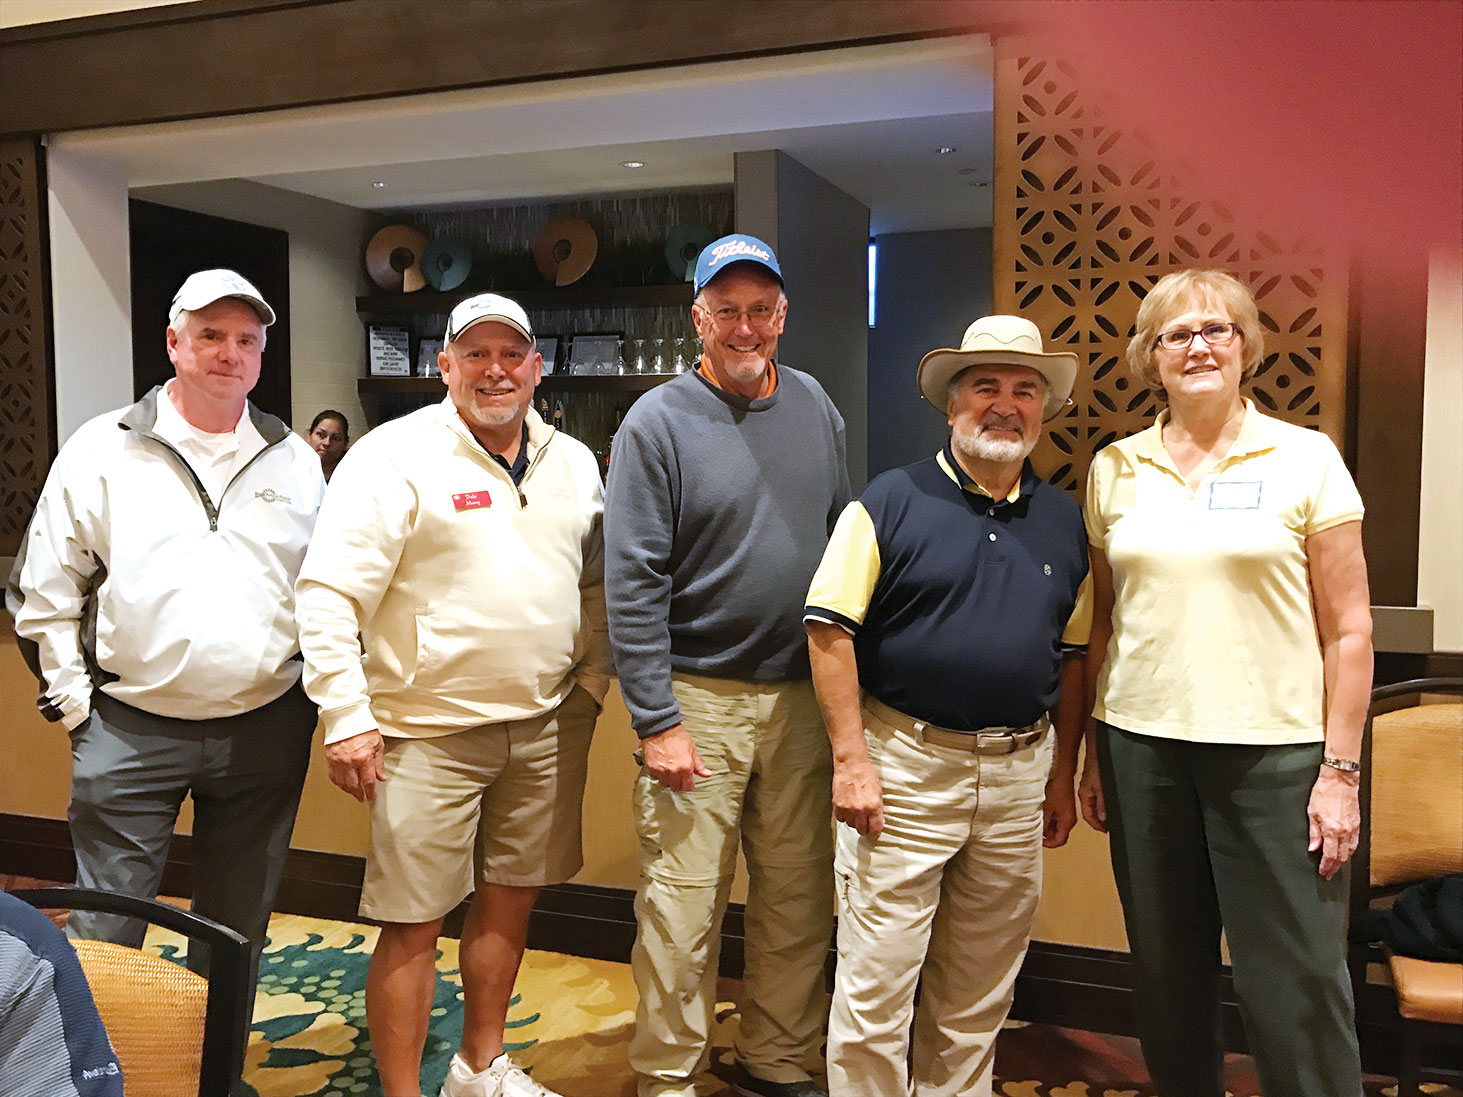 Winners from the RRMXPL event on 1/19/2017, left to right: Ben Blissett, 5th place; Dale Mumy, 4th place; John Sullivan, 3rd place; Stan Lukasik, 2nd place; and Carol Ilten, 1st place.